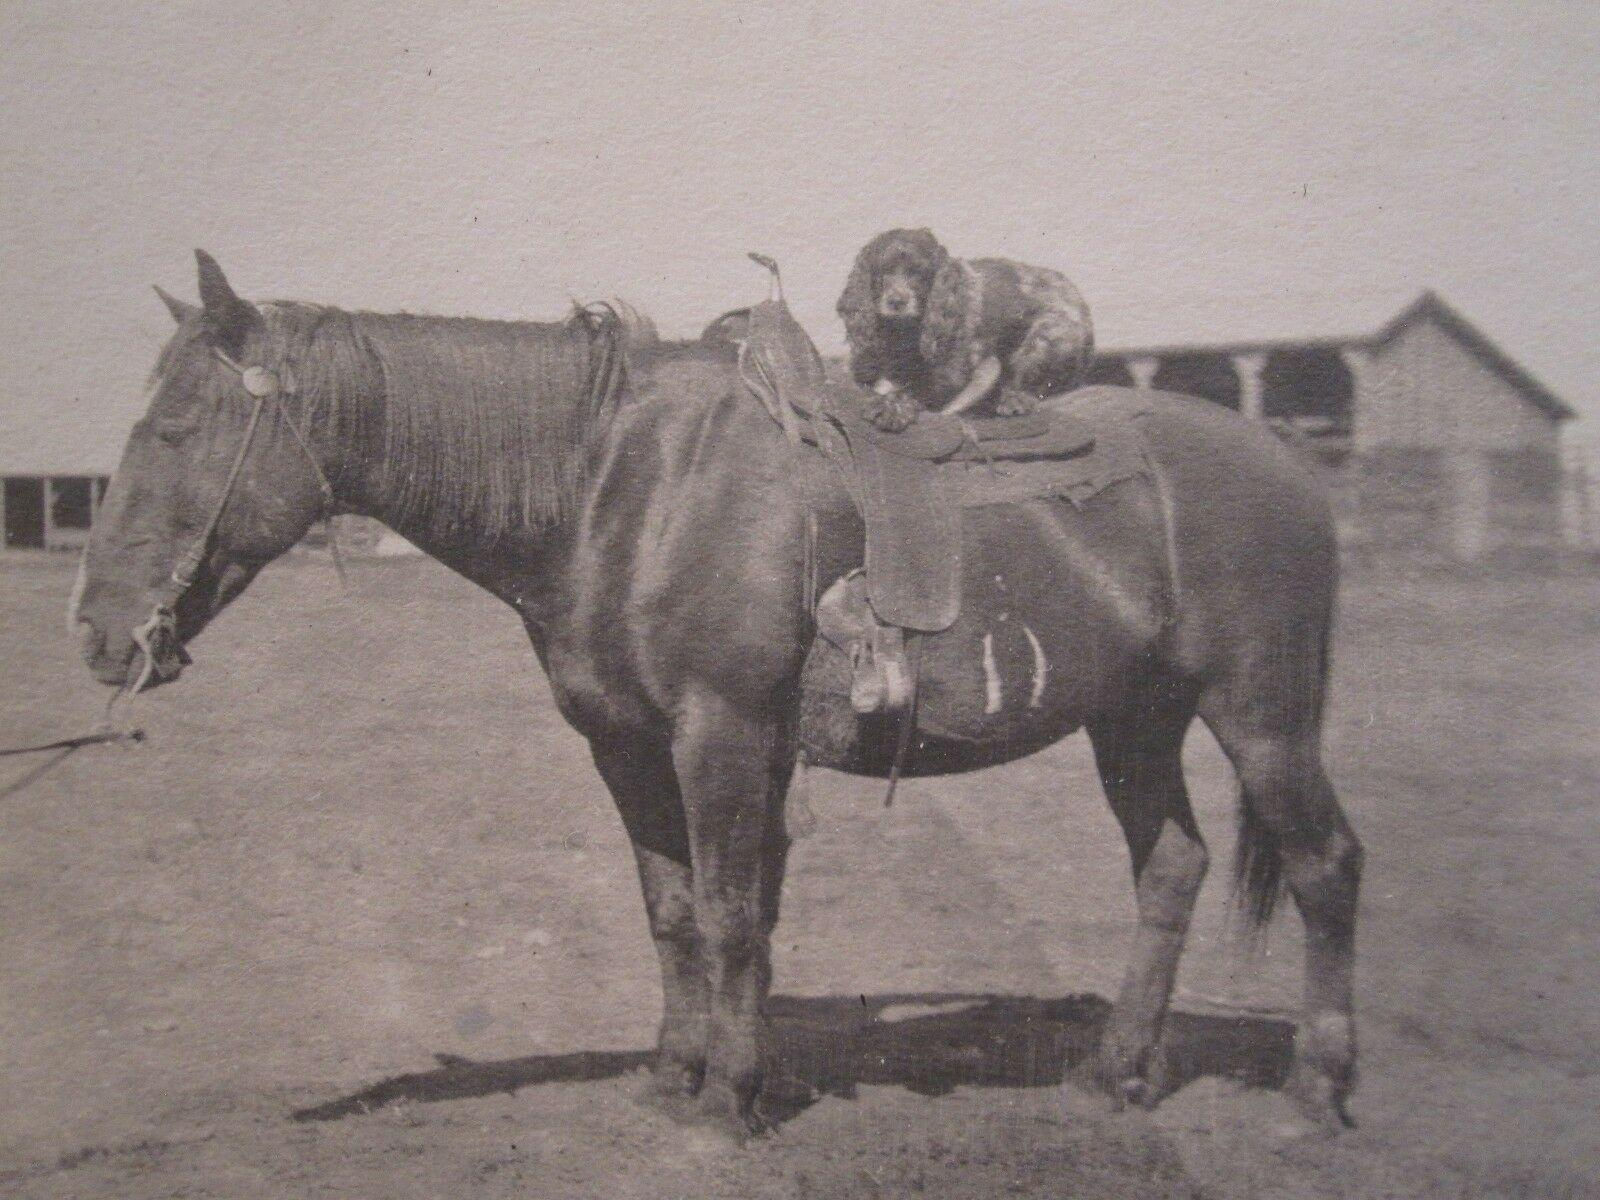 Antique Artistic Cocker Spaniel On Horse Bff Animal Love Saddle Giddy Up Photo 1950 Signed By Author S Photograph 21 East Gallery